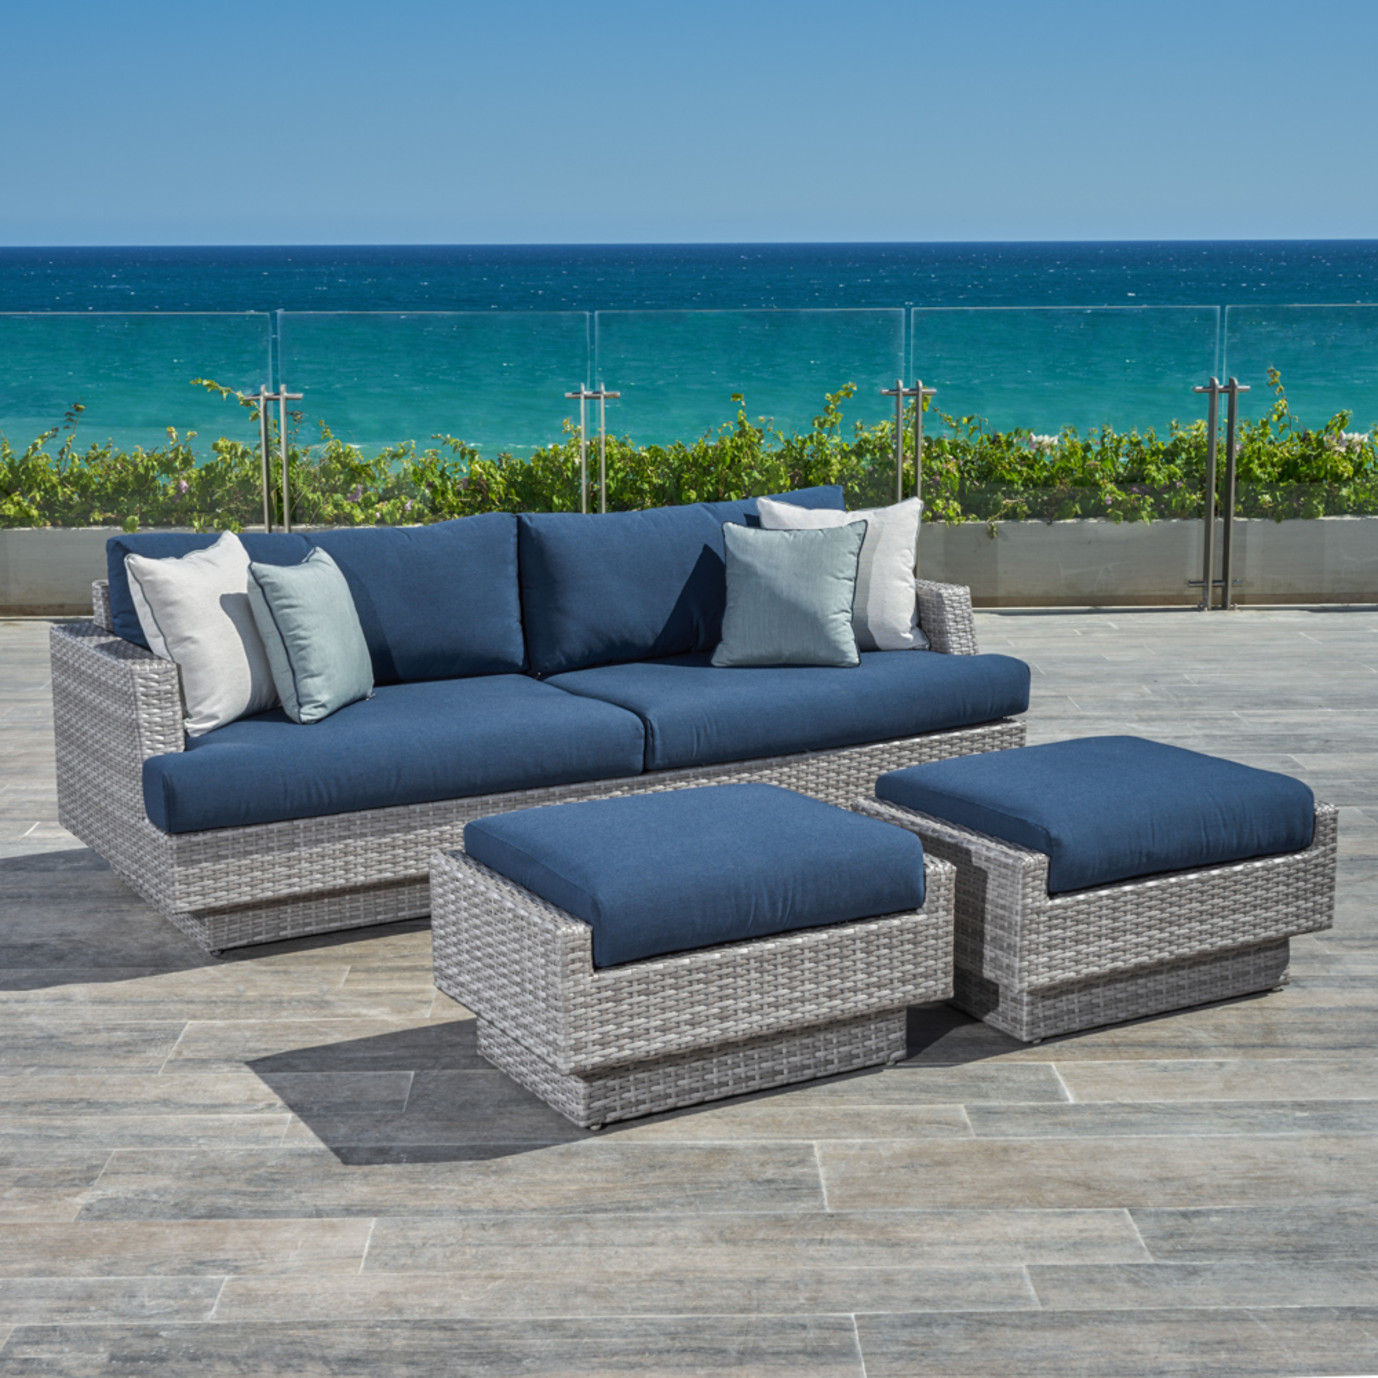 Portofino® Comfort 88in Sofa & Ottomans - Laguna Blue